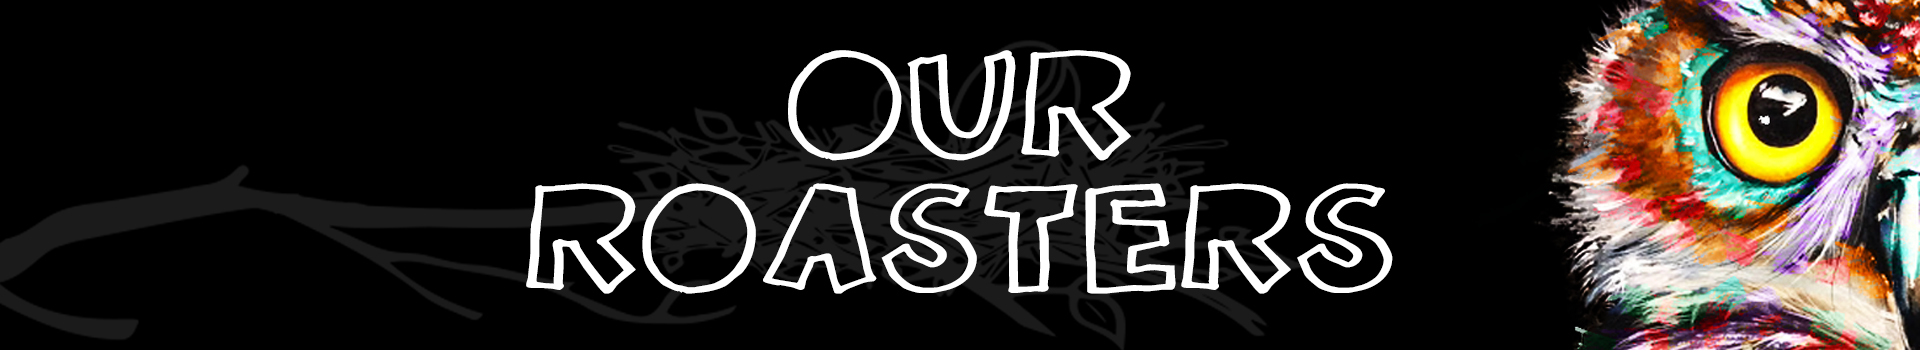 FTE_LO_OUR ROASTERS